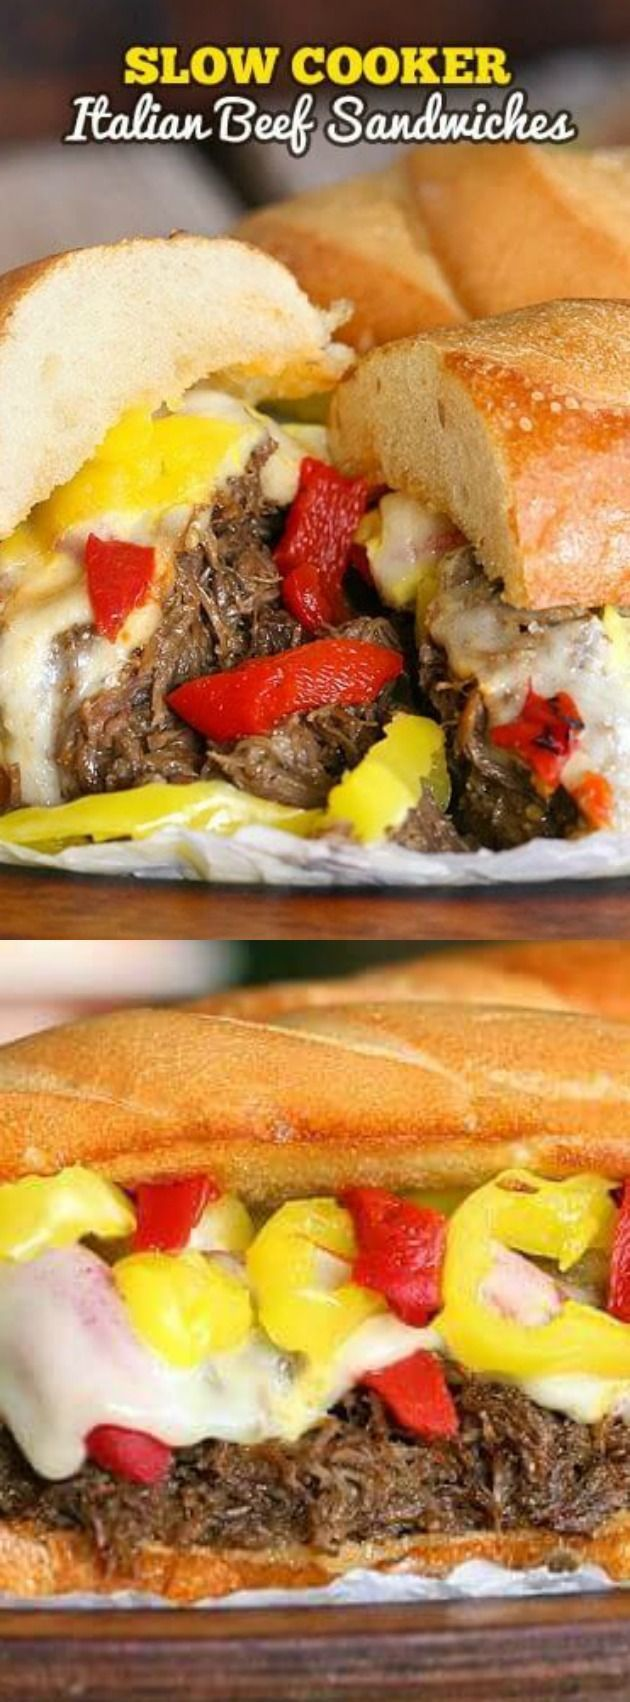 These Slow Cooker Italian Beef Sandwiches from The Slow Roasted Italian are perfectly seasoned tender slow cooked beef that is piled high on a toasted bun and topped with ooey gooey cheese — and 2 kinds of peppers!